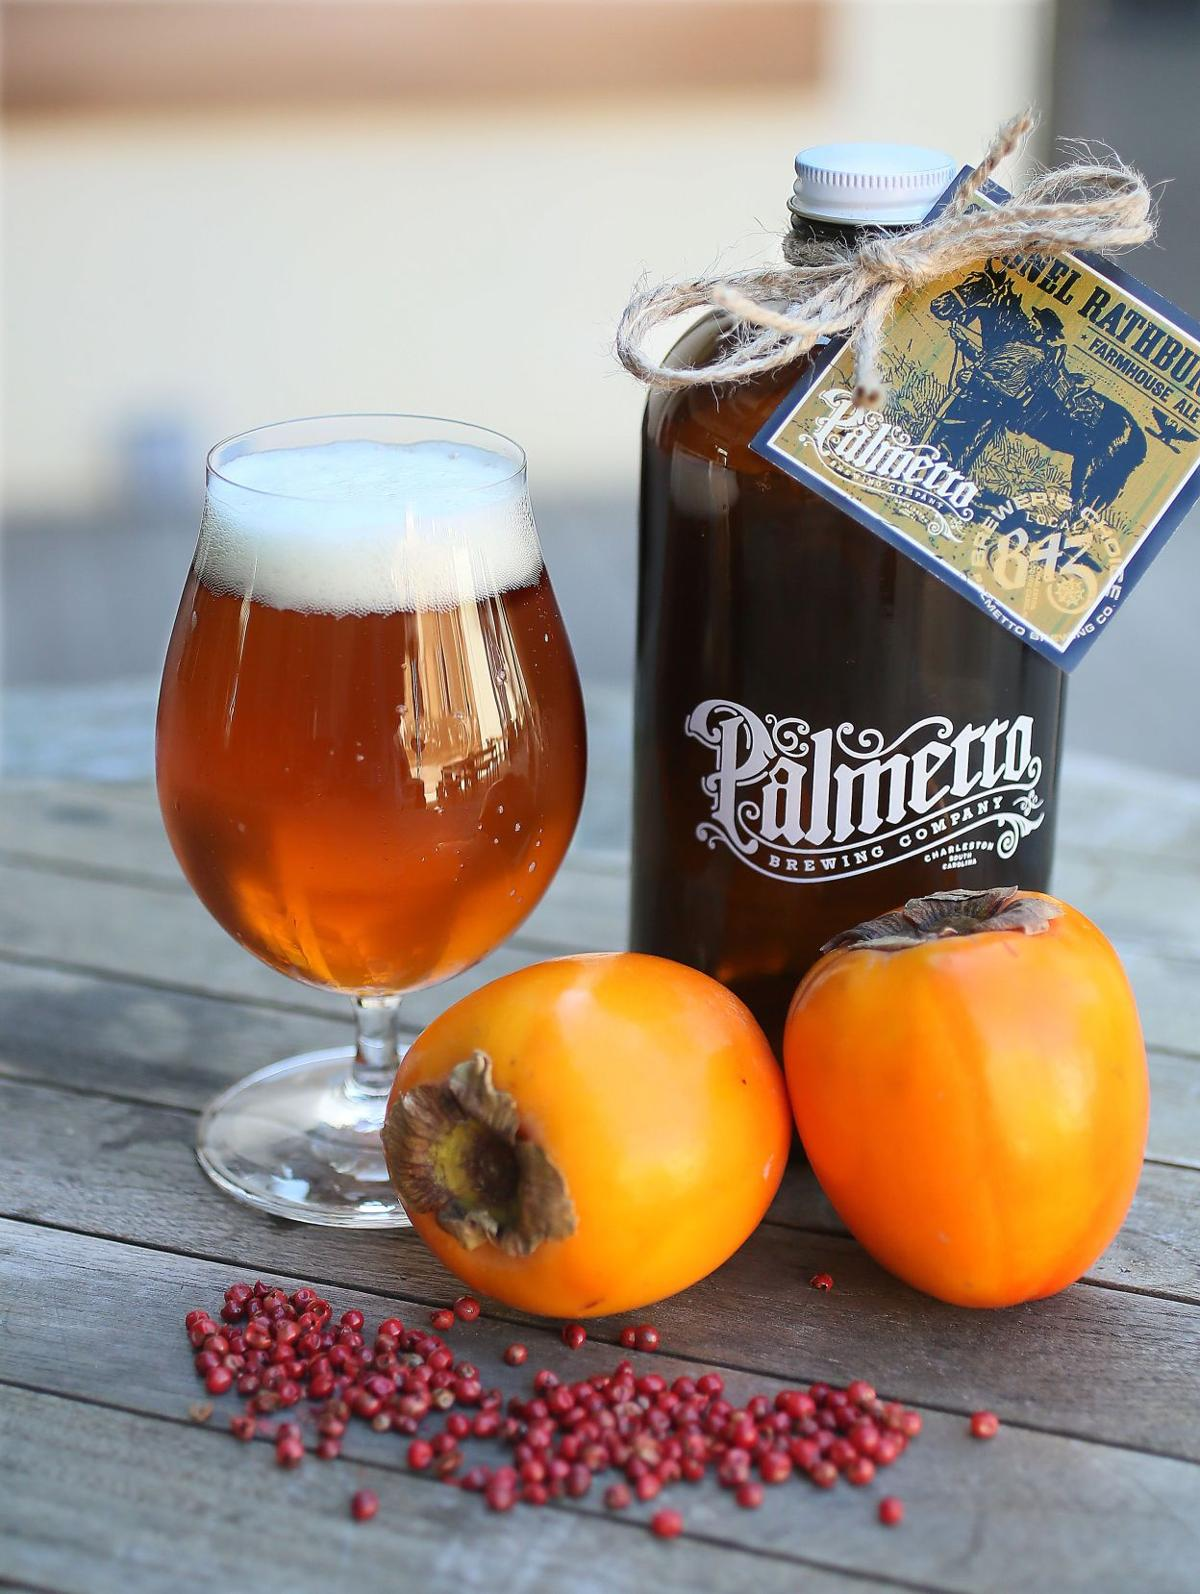 Liquid assets: New Farmhouse Ale from Palmetto includes local persimmons, pink peppercorns and a pinch of philanthropy